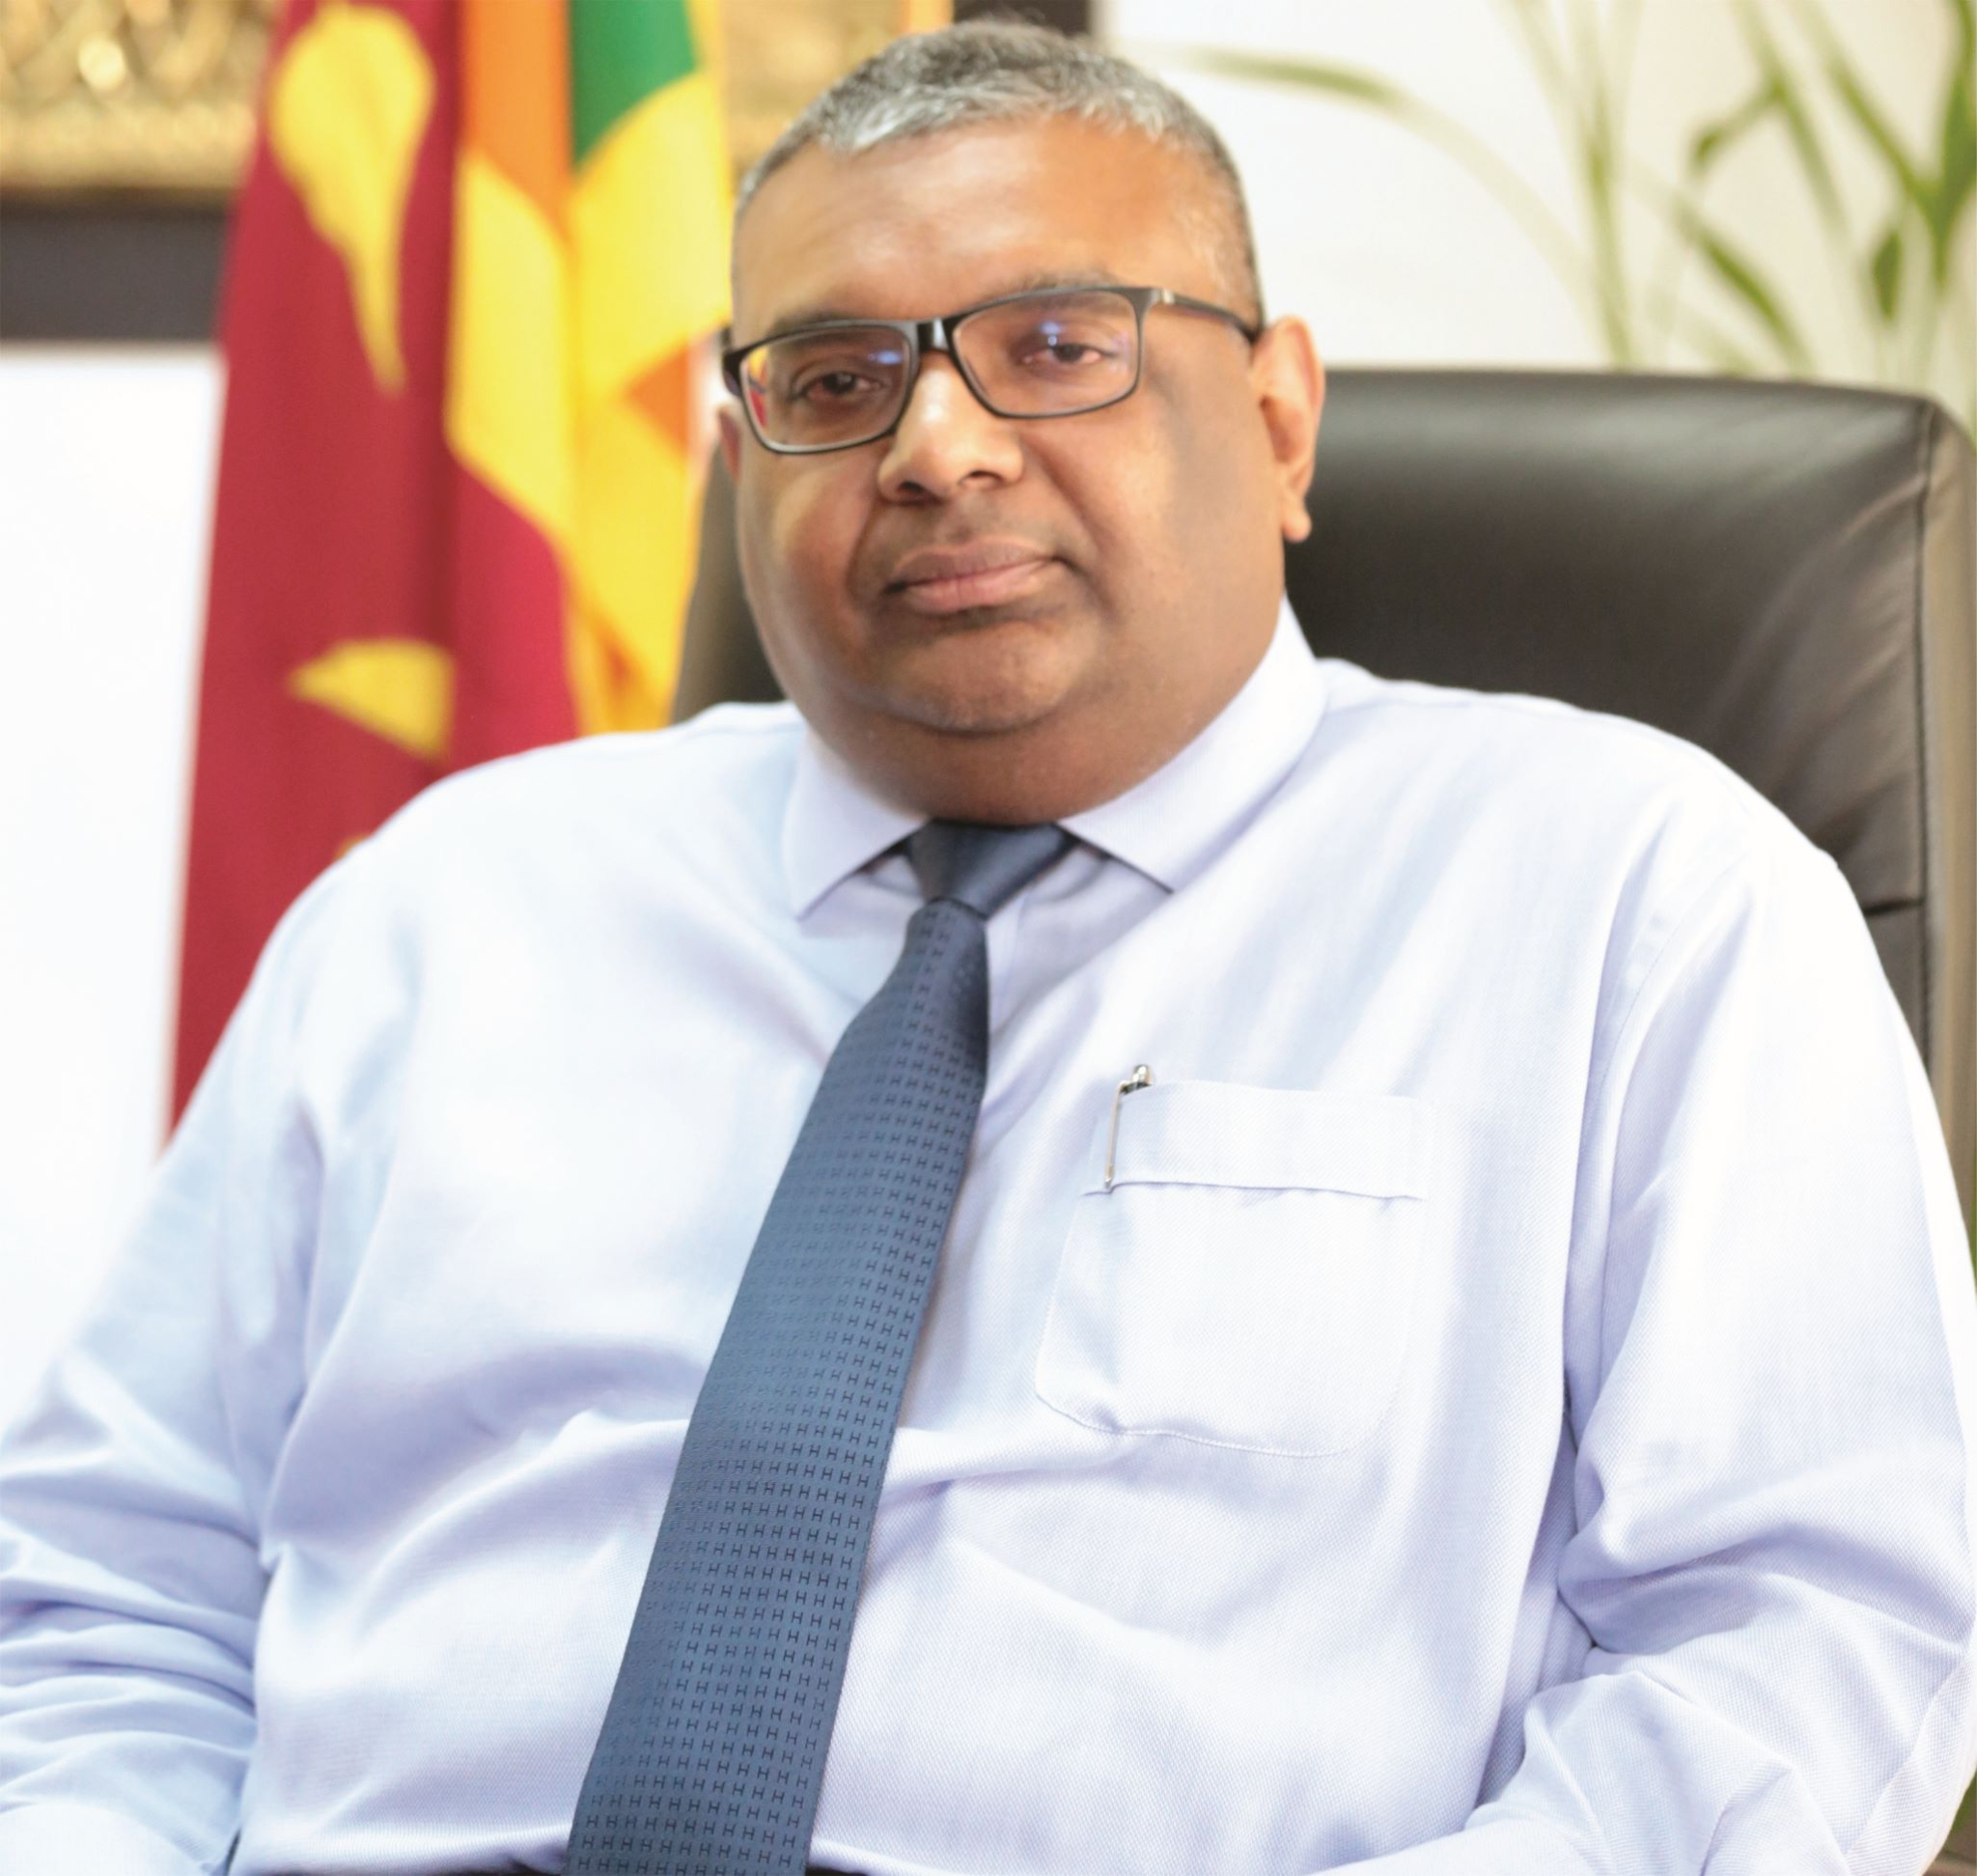 GRI managing director: 2021 is a year to build